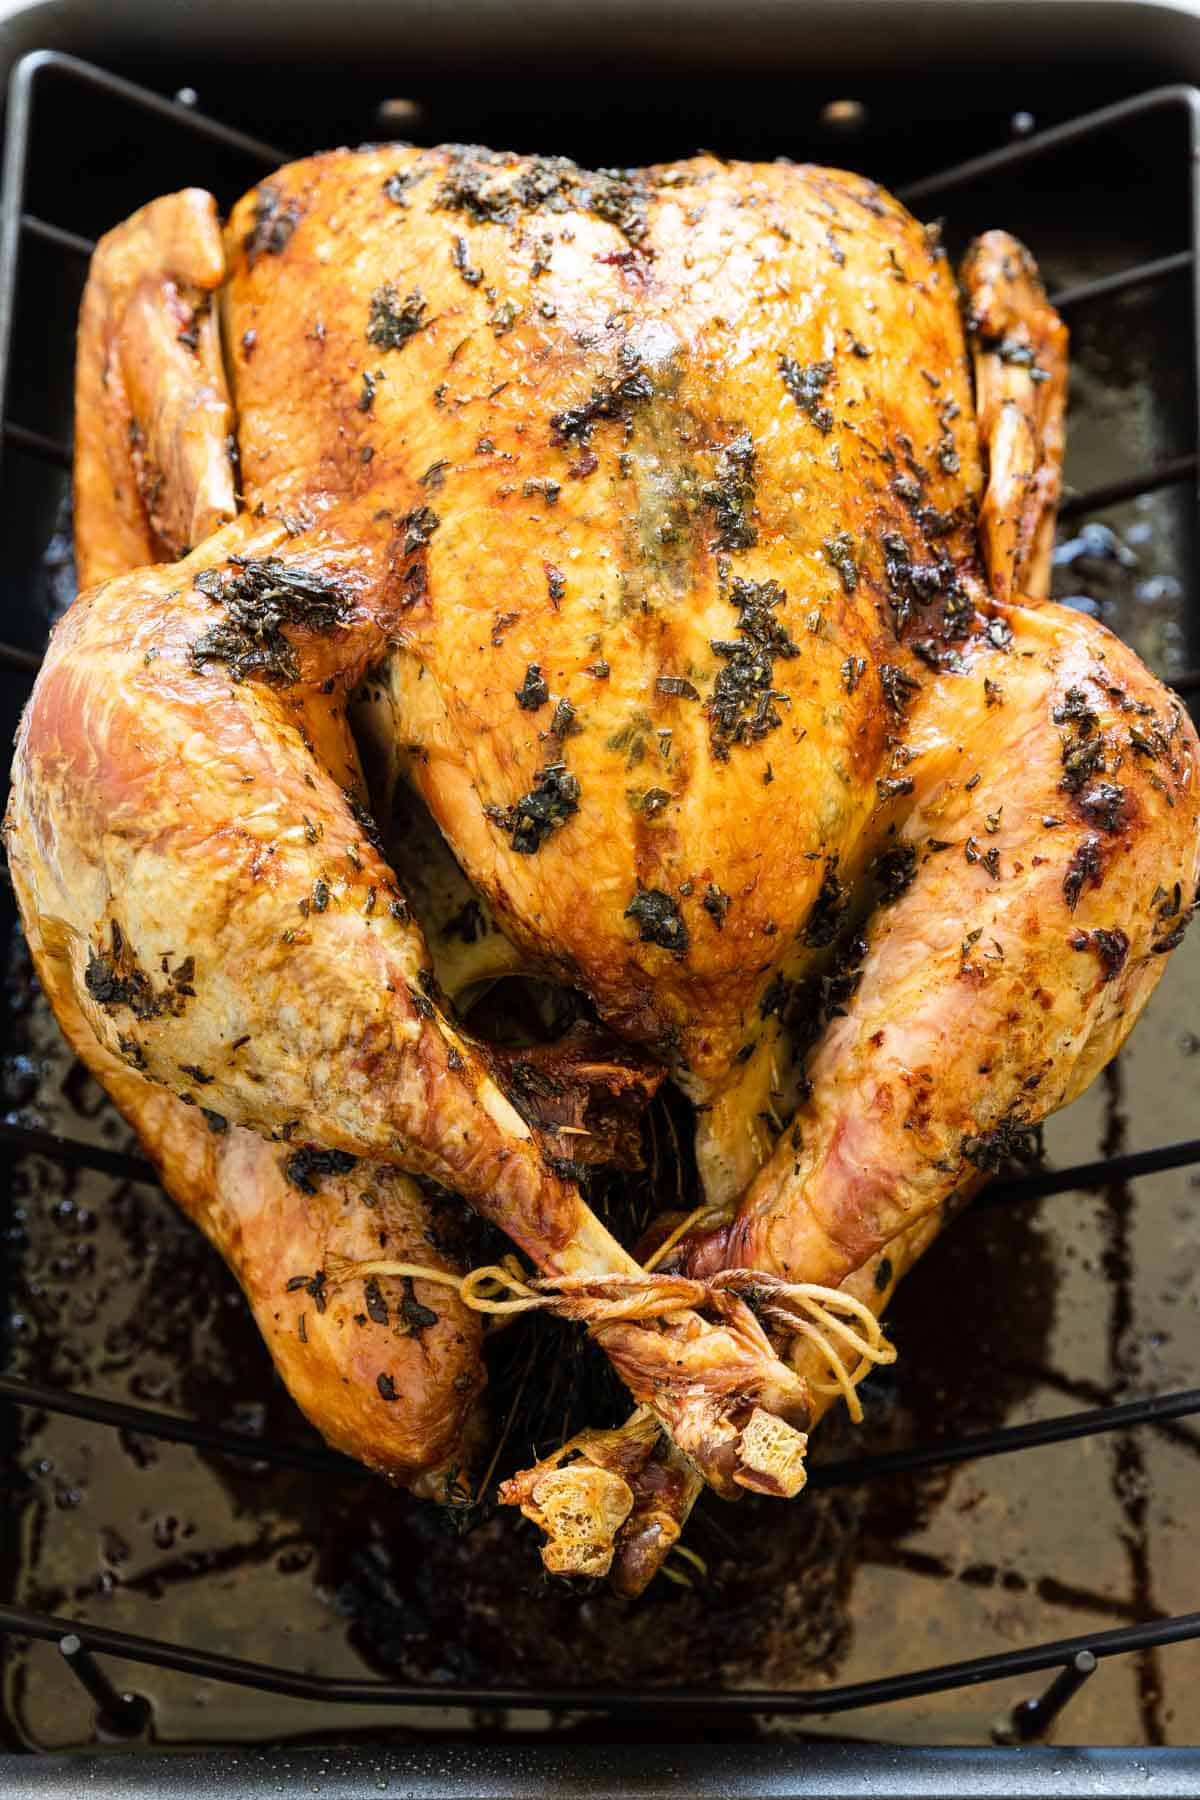 roasted whole turkey in a roasting pan